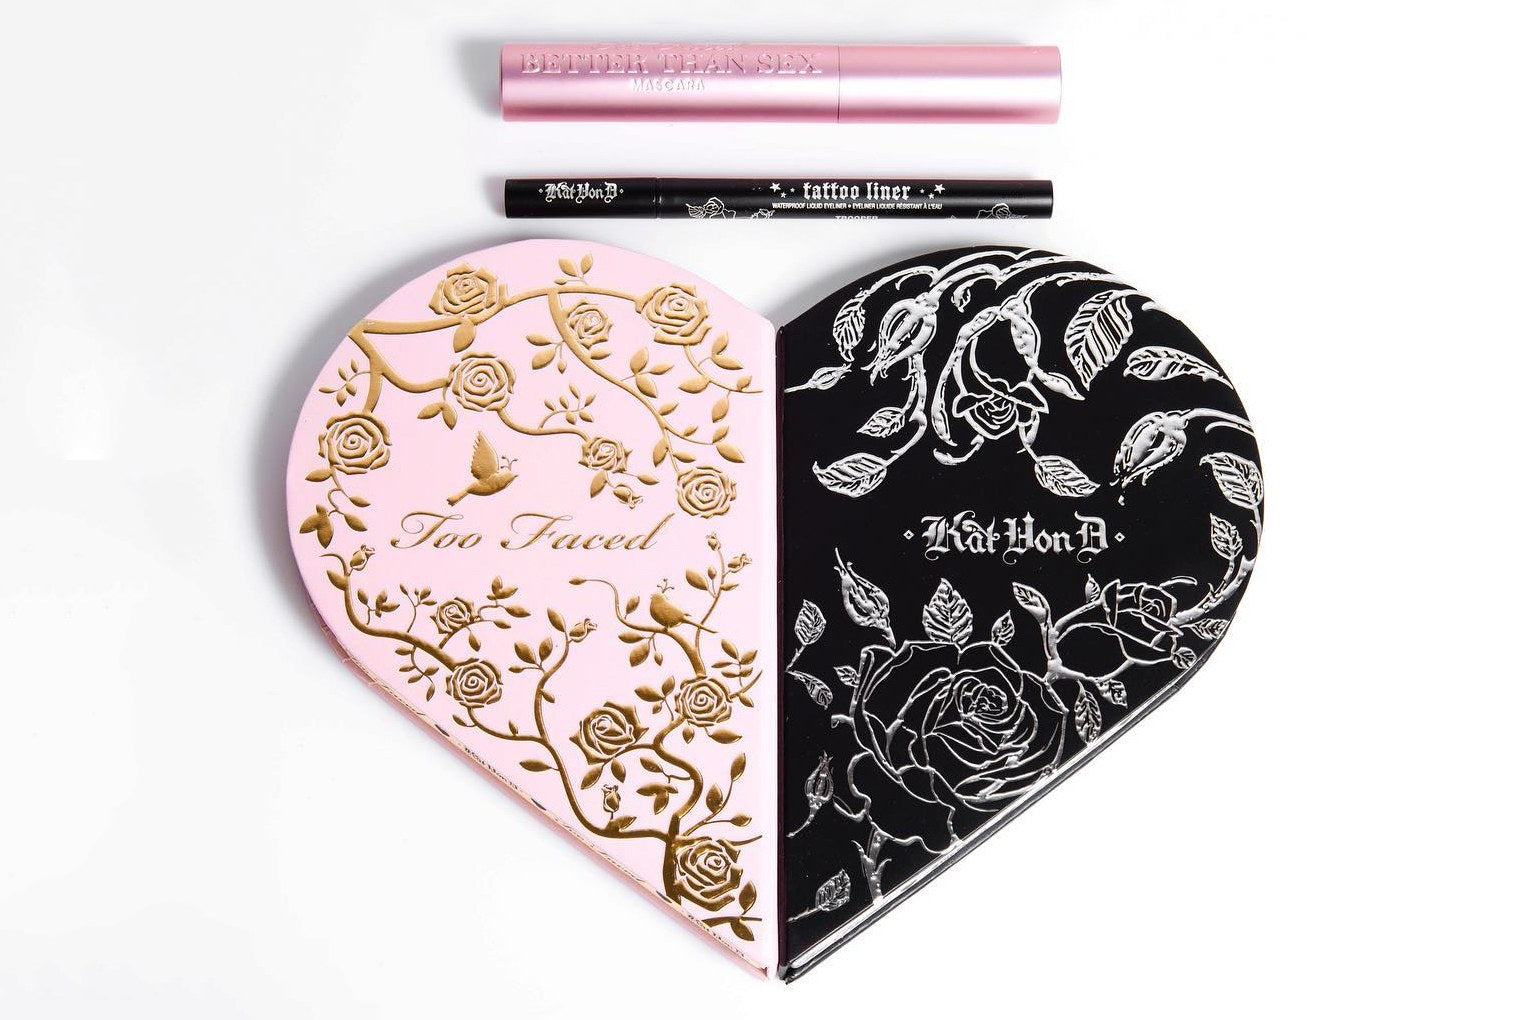 Kat Von D & Too Faced Collaborate